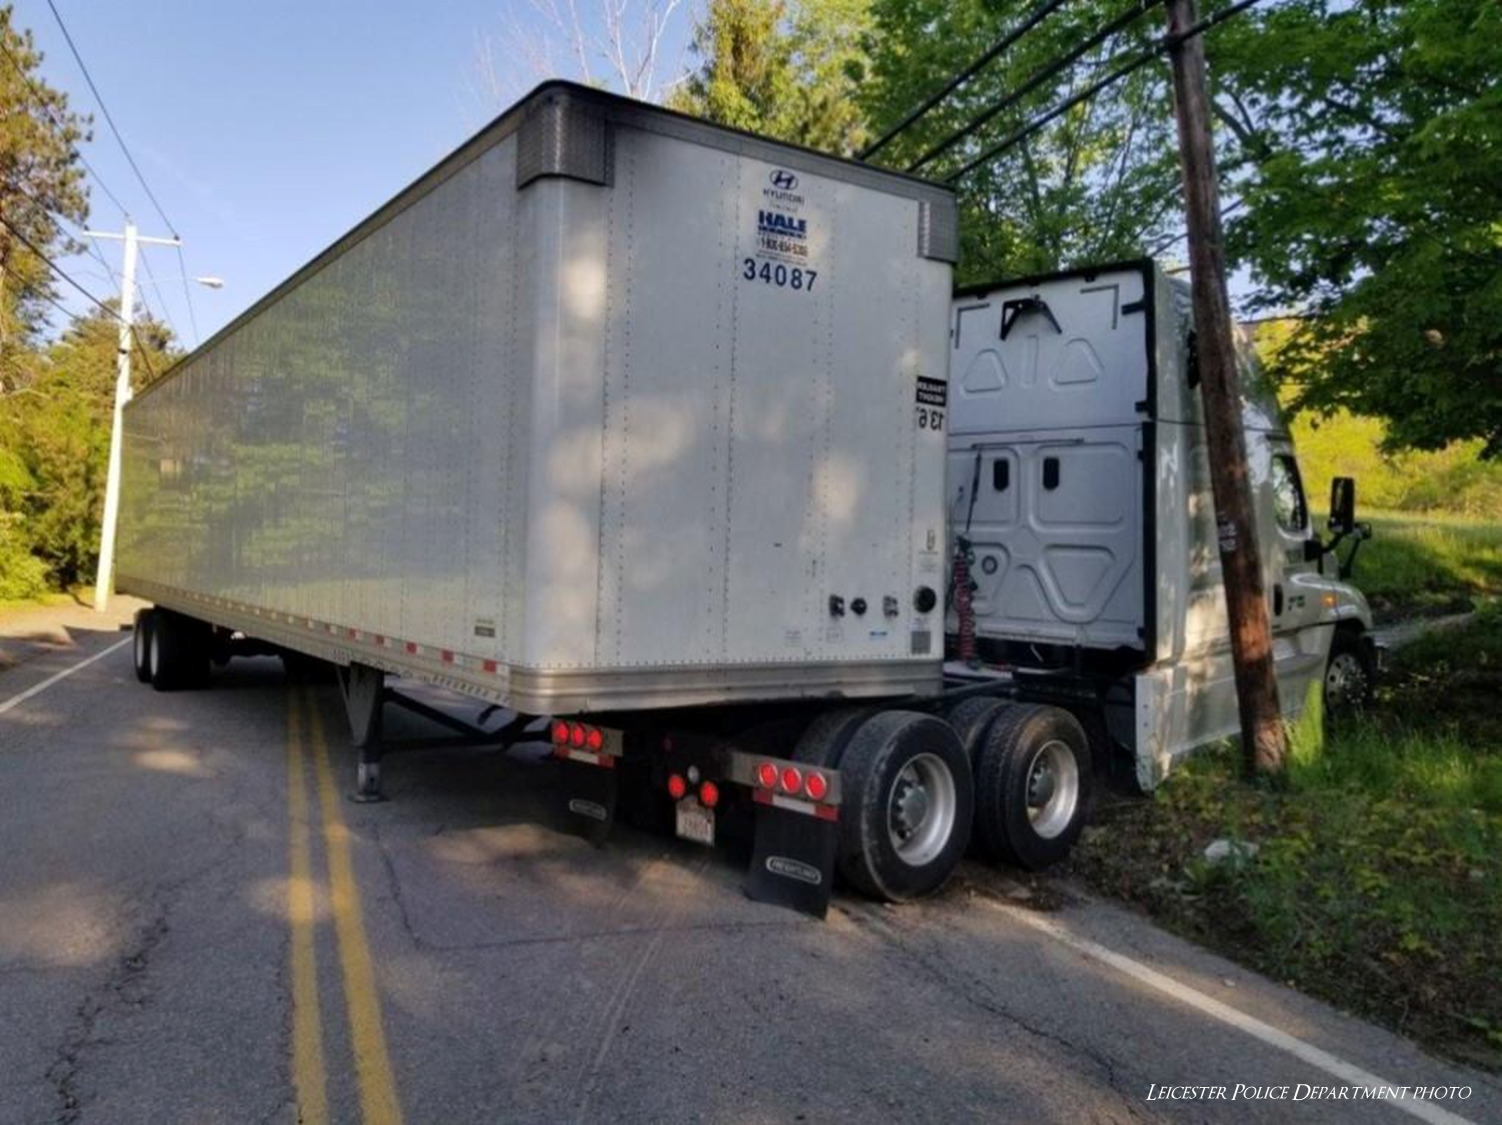 Morning commute snarled by jackknifed tractor trailer